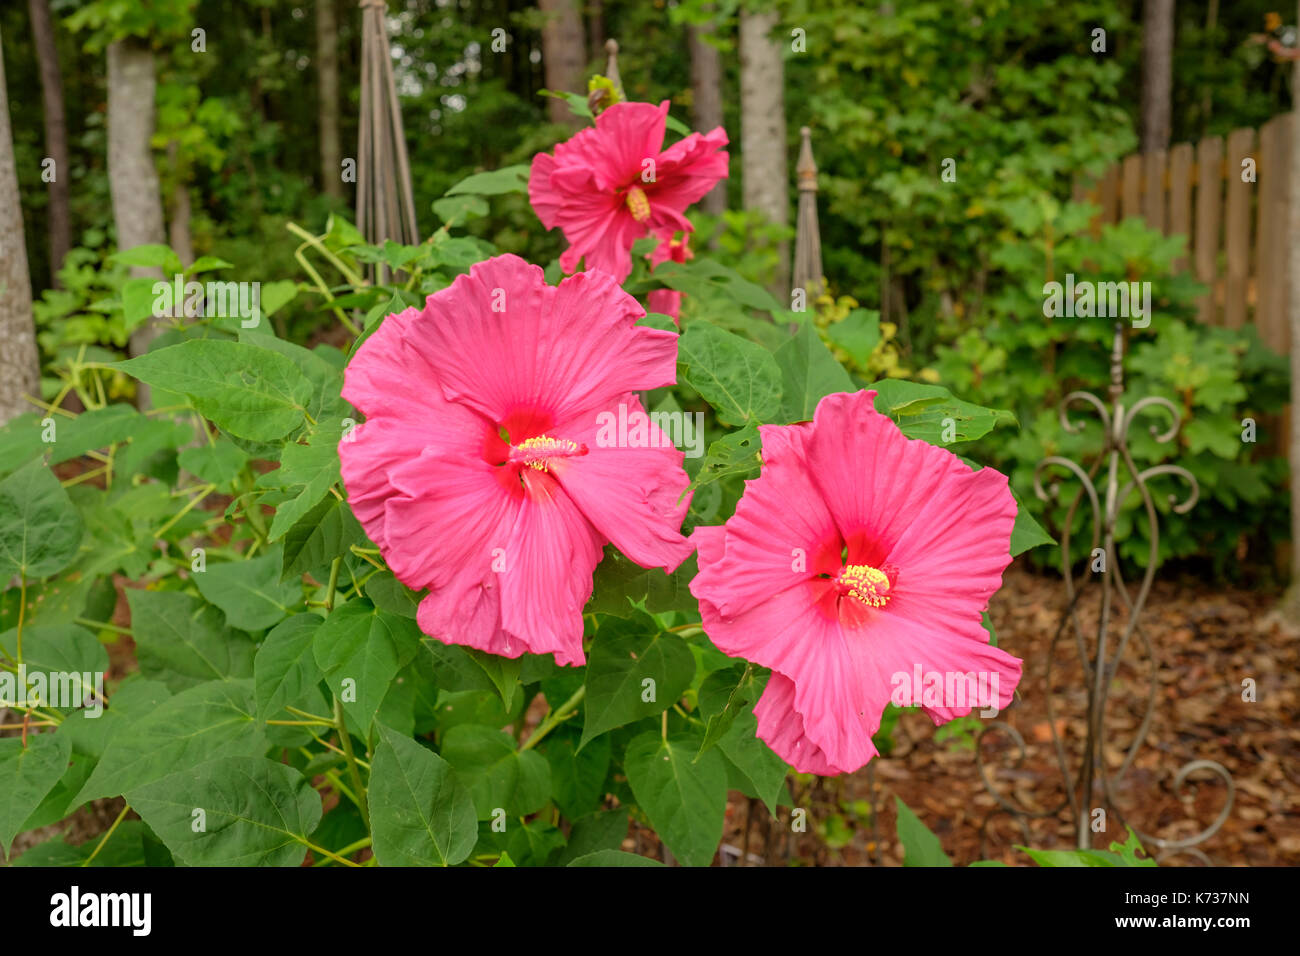 Giant pink hibiscus plant, flowering and growing in an Alabama garden, United States. Stock Photo